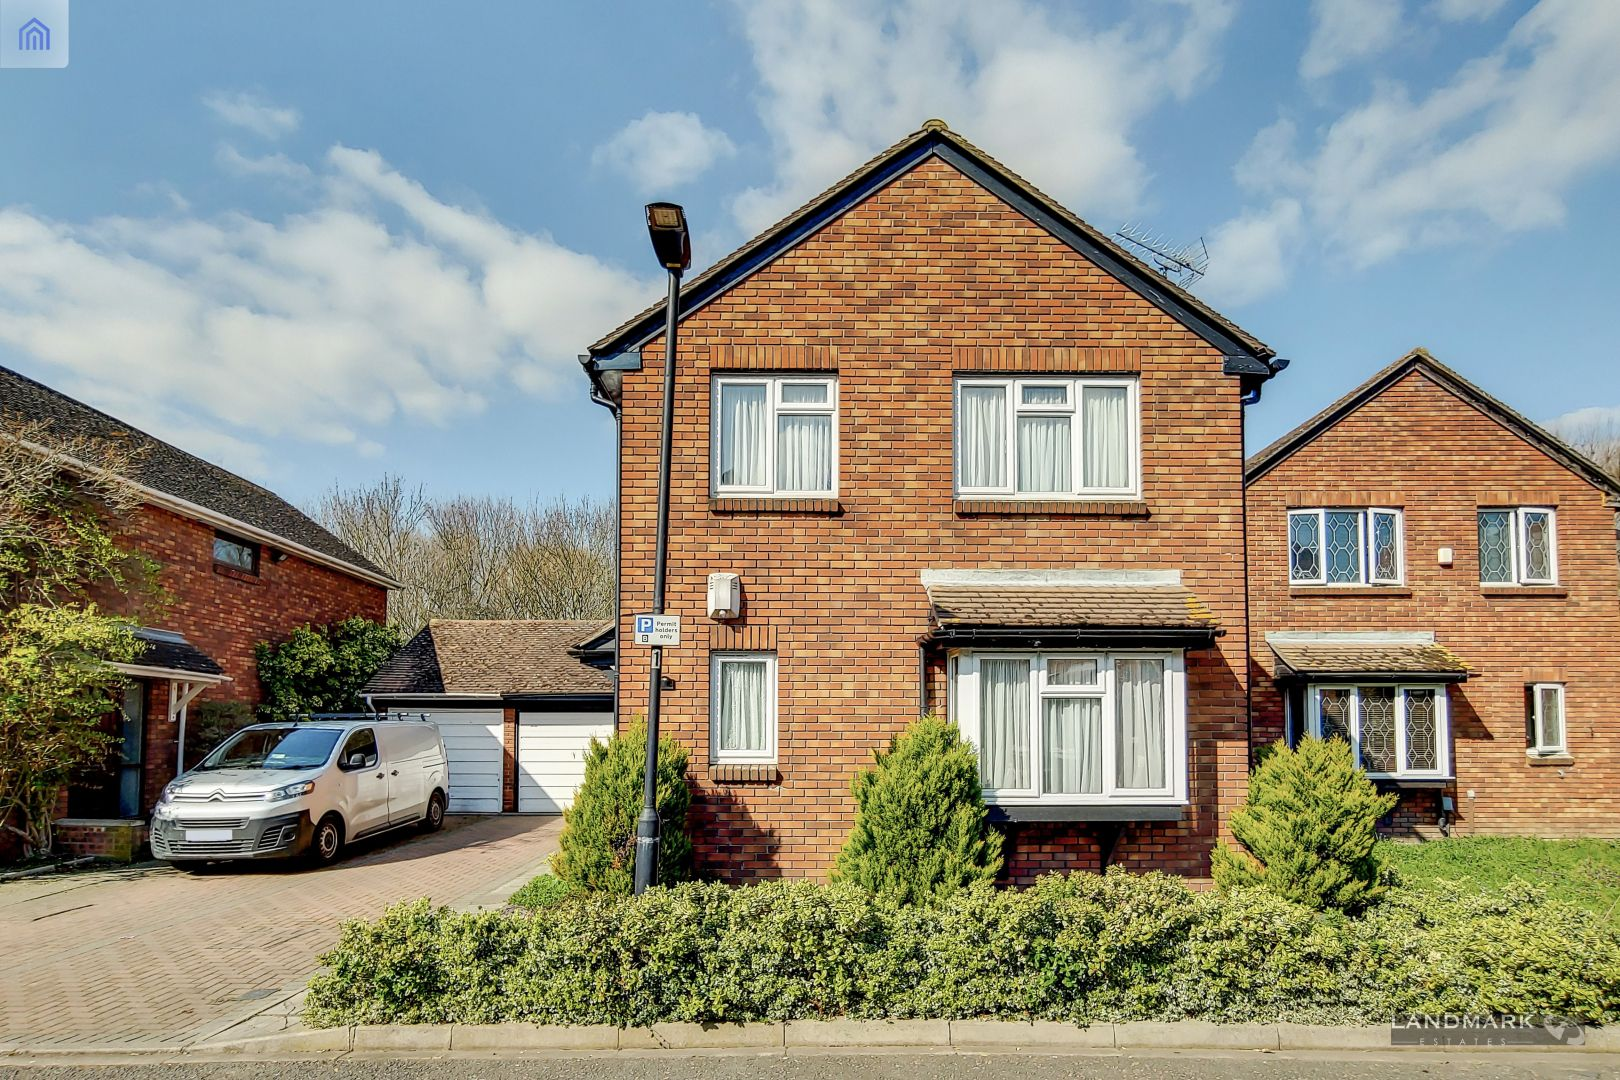 4 bed house for sale in Chichester Close - Property Image 1